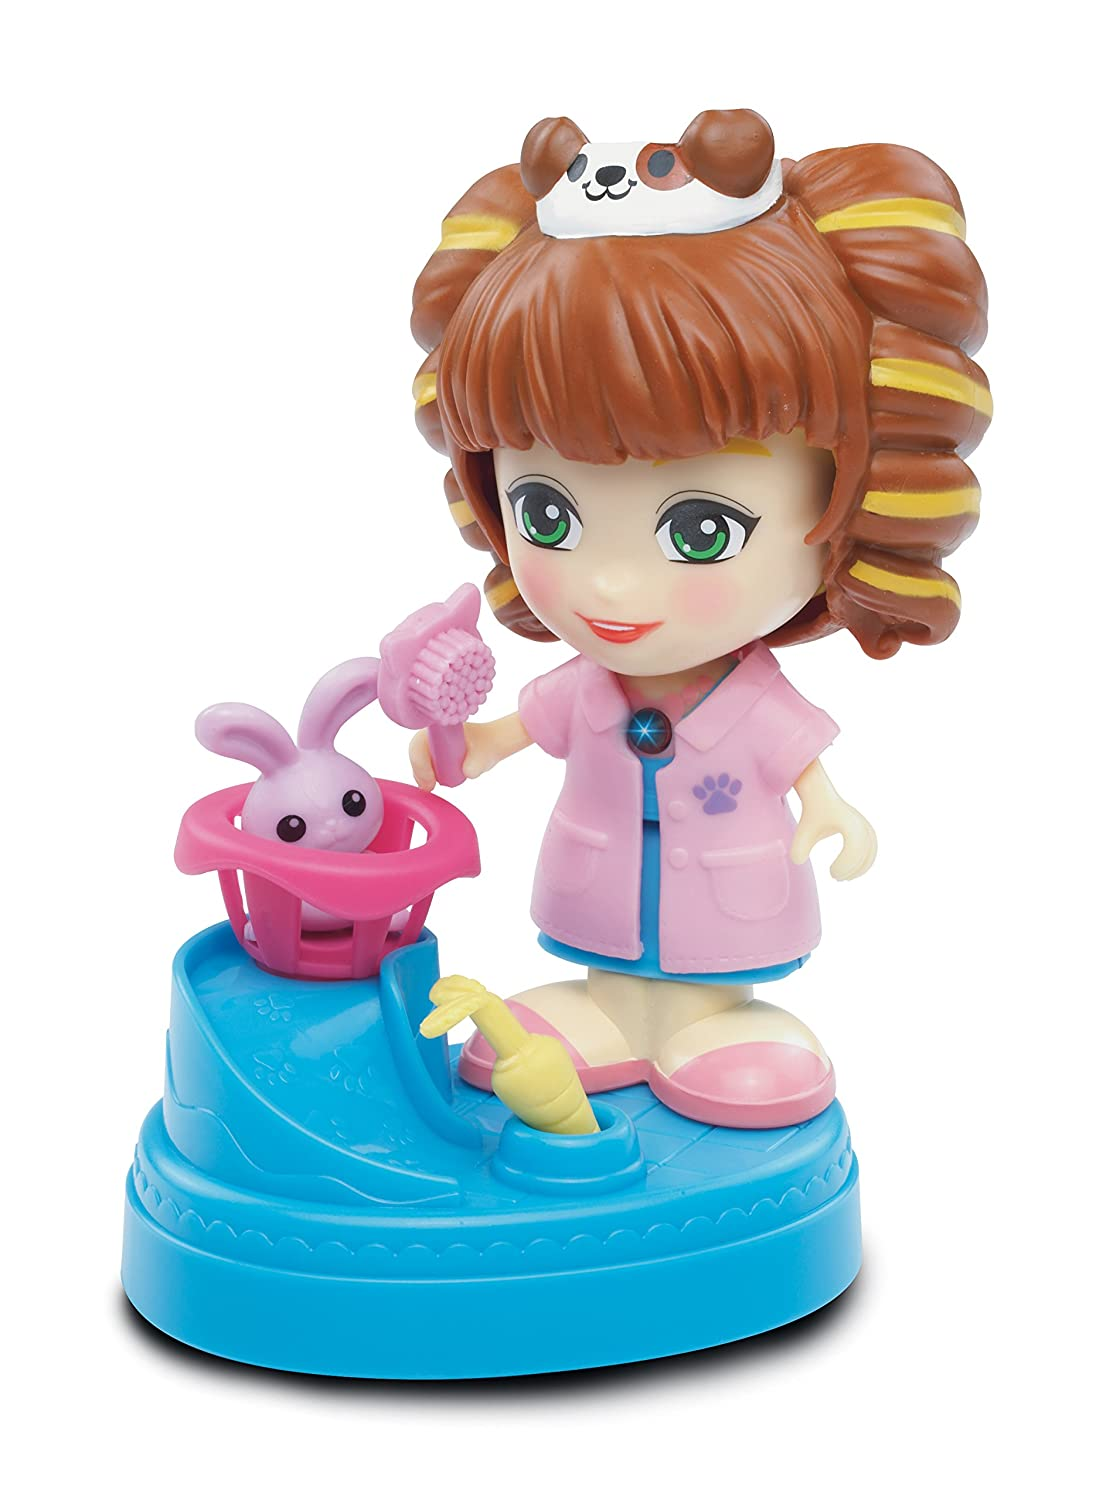 Vtech - A1503846 - Flipsies - Boutique Mode Salon 159805 Figurine Vie urbaine